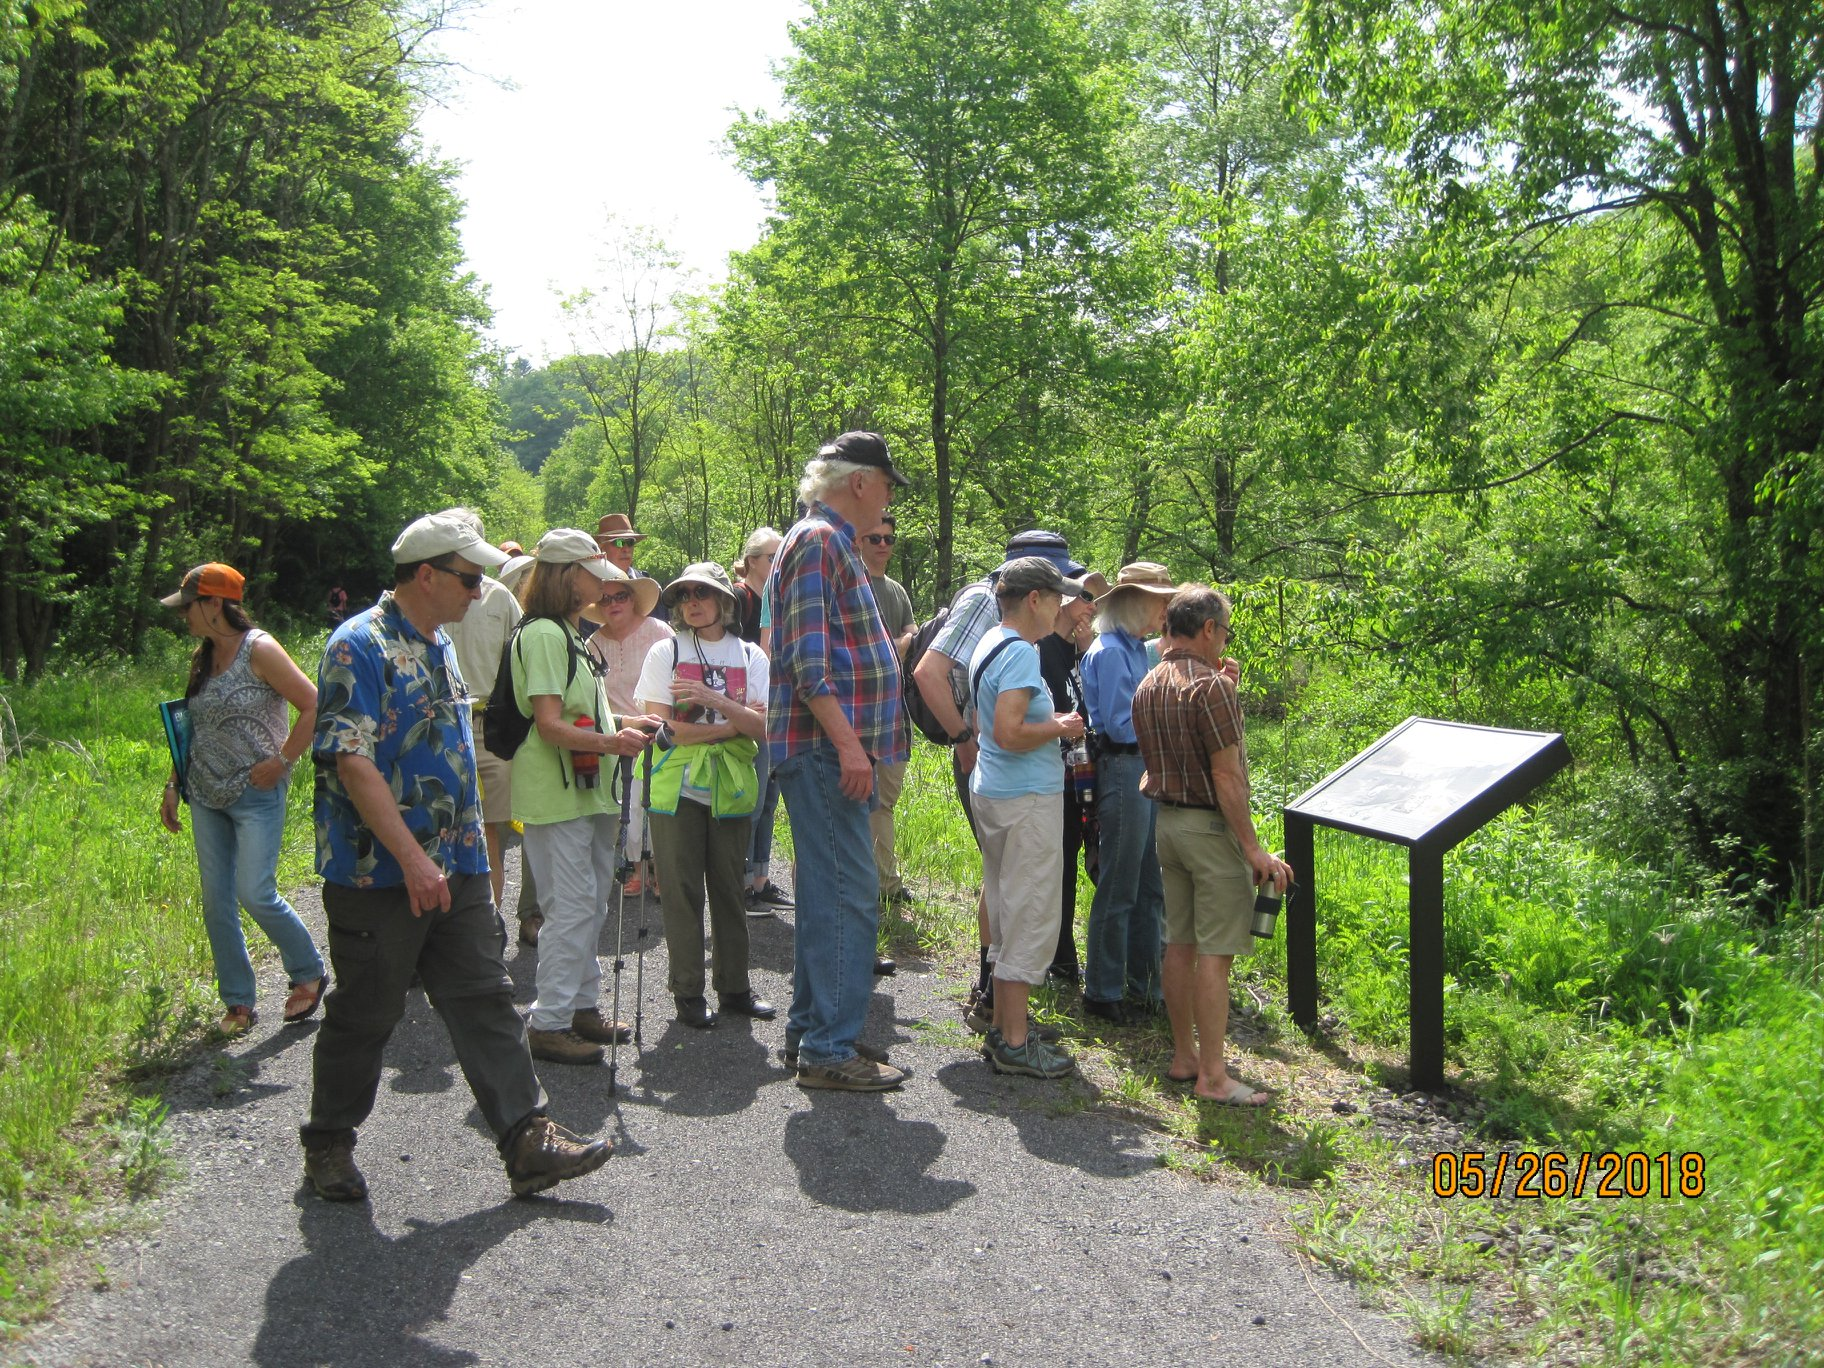 history hike participants admiring new sign